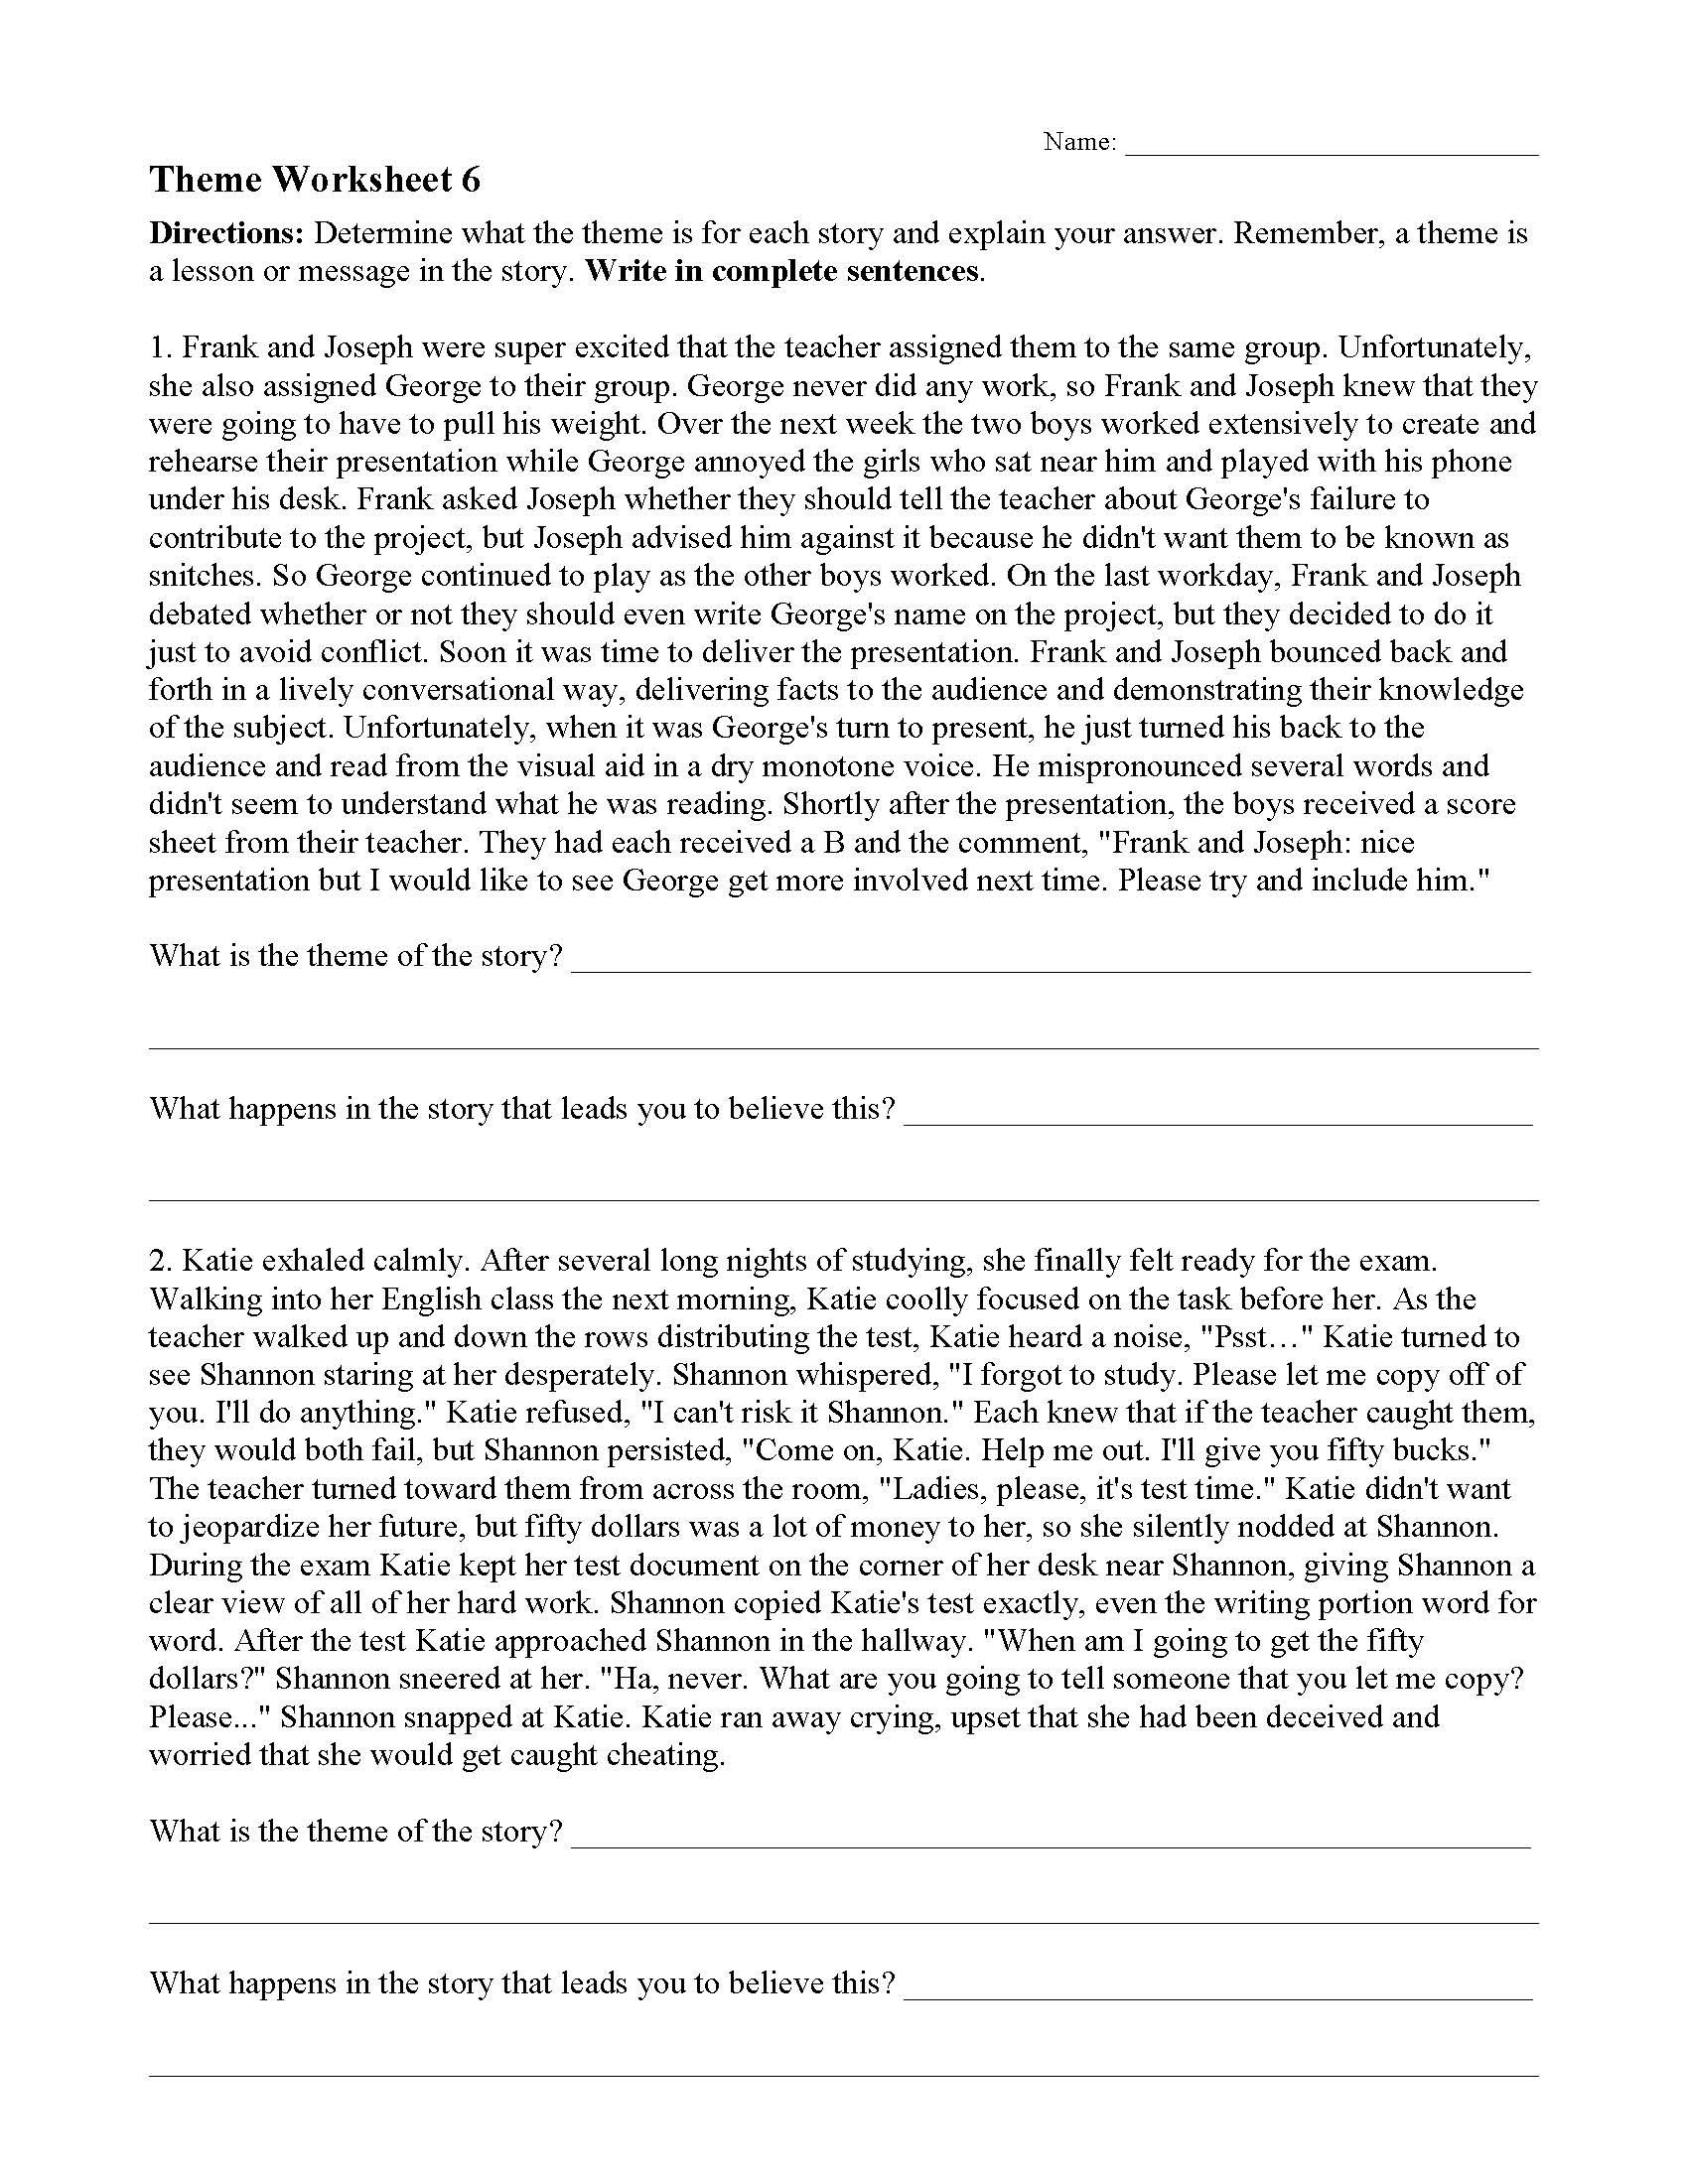 Identifying theme Worksheets Answers theme or Author S Message Worksheets